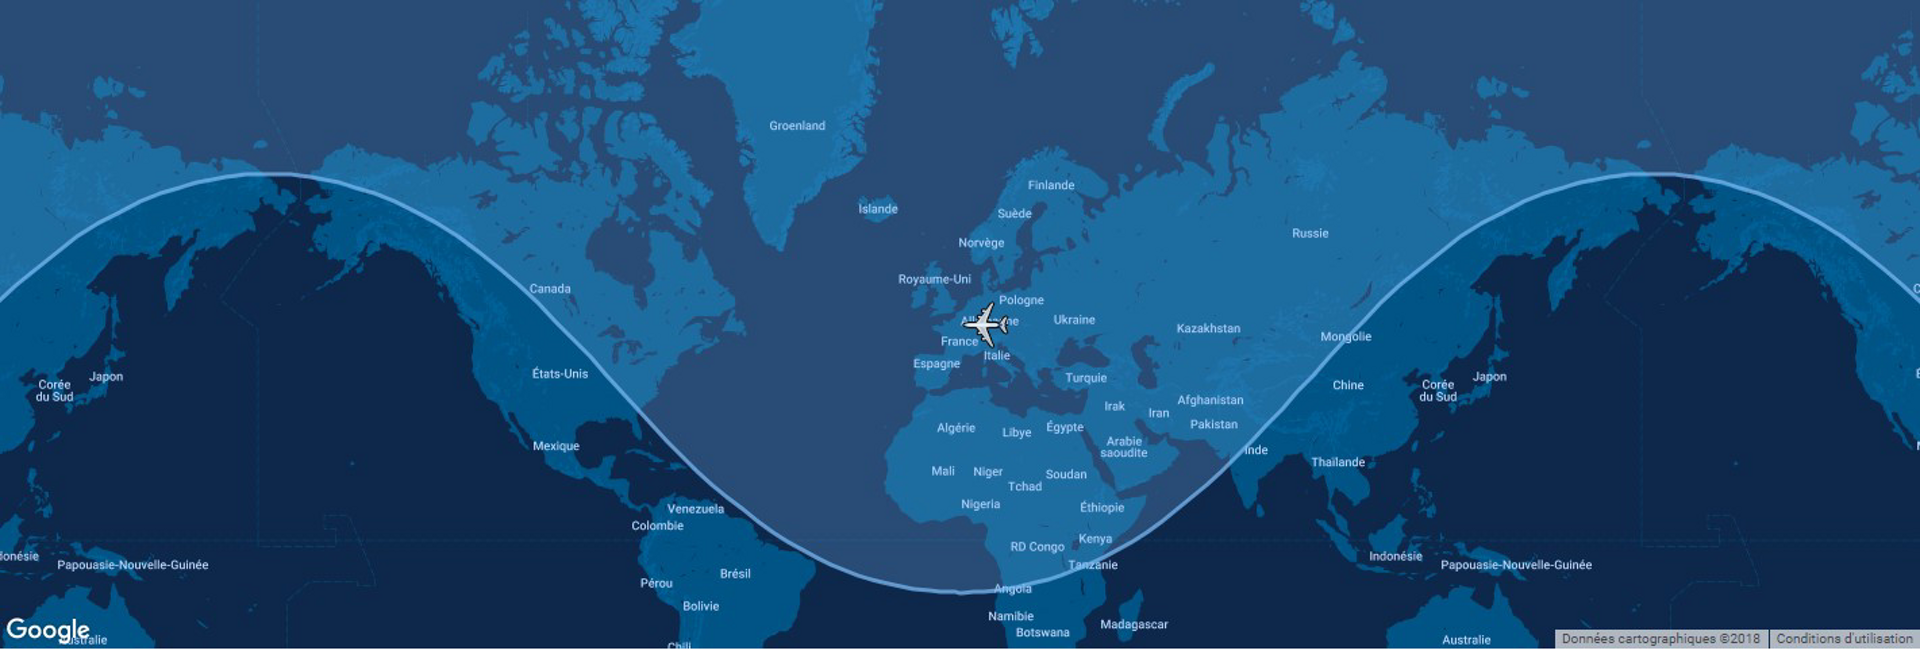 Overlaid on a global map, the typical range for Airbus' A319ceo commercial aircraft is shown in this diagram.